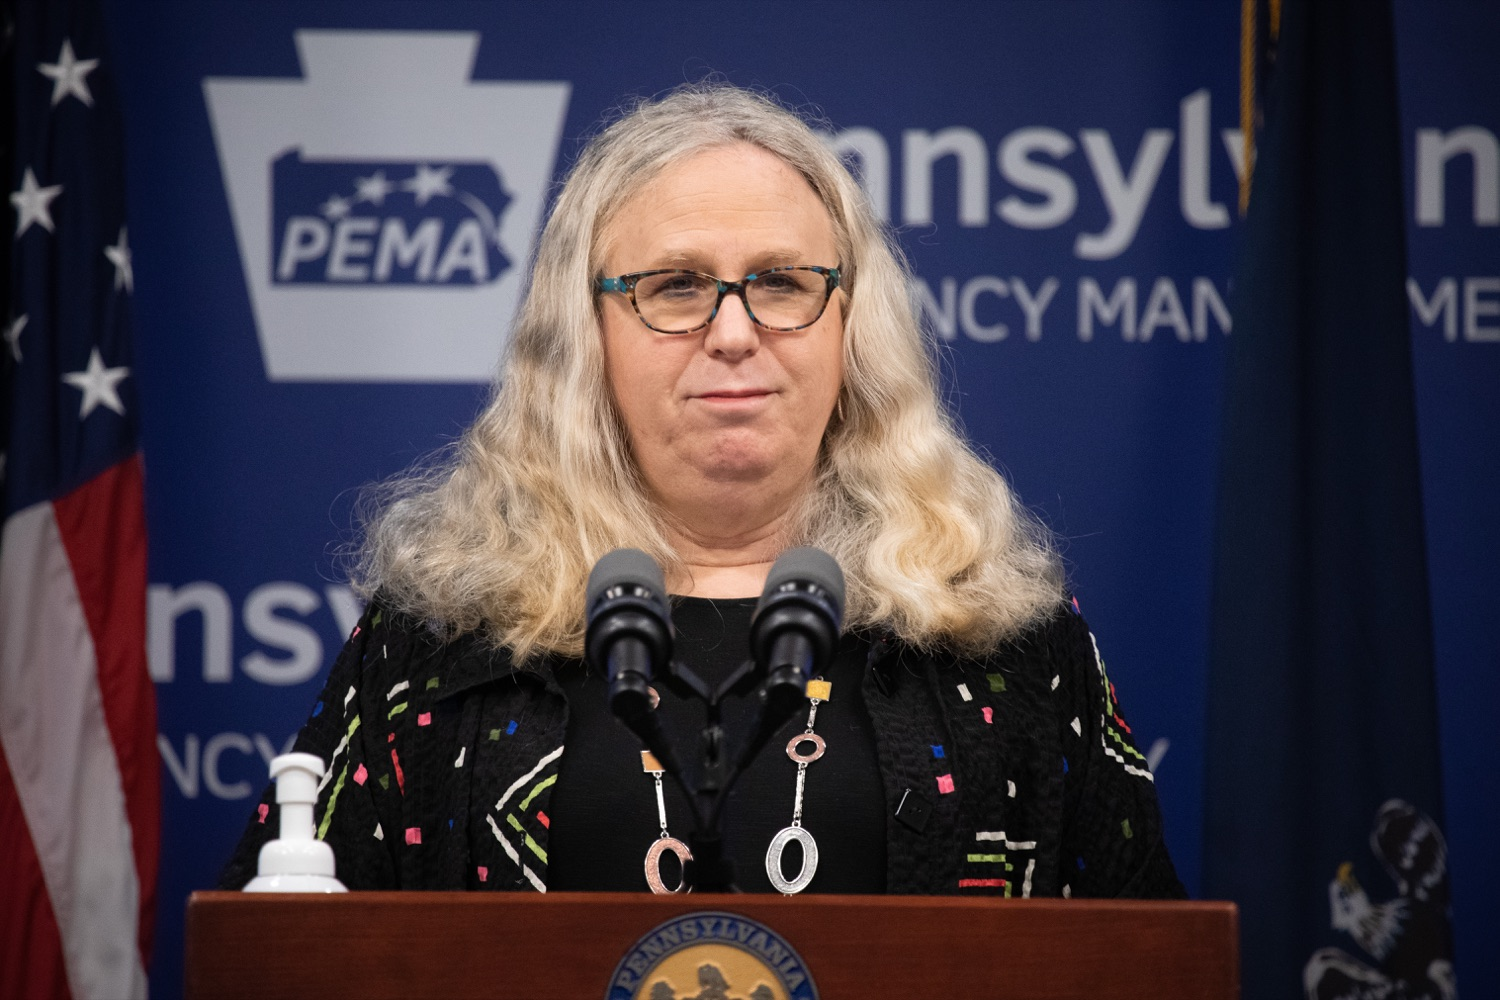 "<a href=""https://filesource.wostreaming.net/commonwealthofpa/photo/18176_doh_covid19_update_dz_13.jpg"" target=""_blank"">⇣ Download Photo<br></a>Secretary of Health Dr. Rachel Levine speaking to the press.  The Pennsylvania Department of Health today confirmed as of 12:00 a.m., July 23, that there are 962 additional positive cases of COVID-19, bringing the statewide total to 104,358. All 67 counties in Pennsylvania have cases of COVID-19. Allegheny is reporting an increase of 147 cases, and Philadelphia is reporting an increase of 311 cases. Since there was no data reported from Philadelphia yesterday, the number of new cases is a culmination of cases from the past two days. Harrisburg, PA - July 23, 2020"